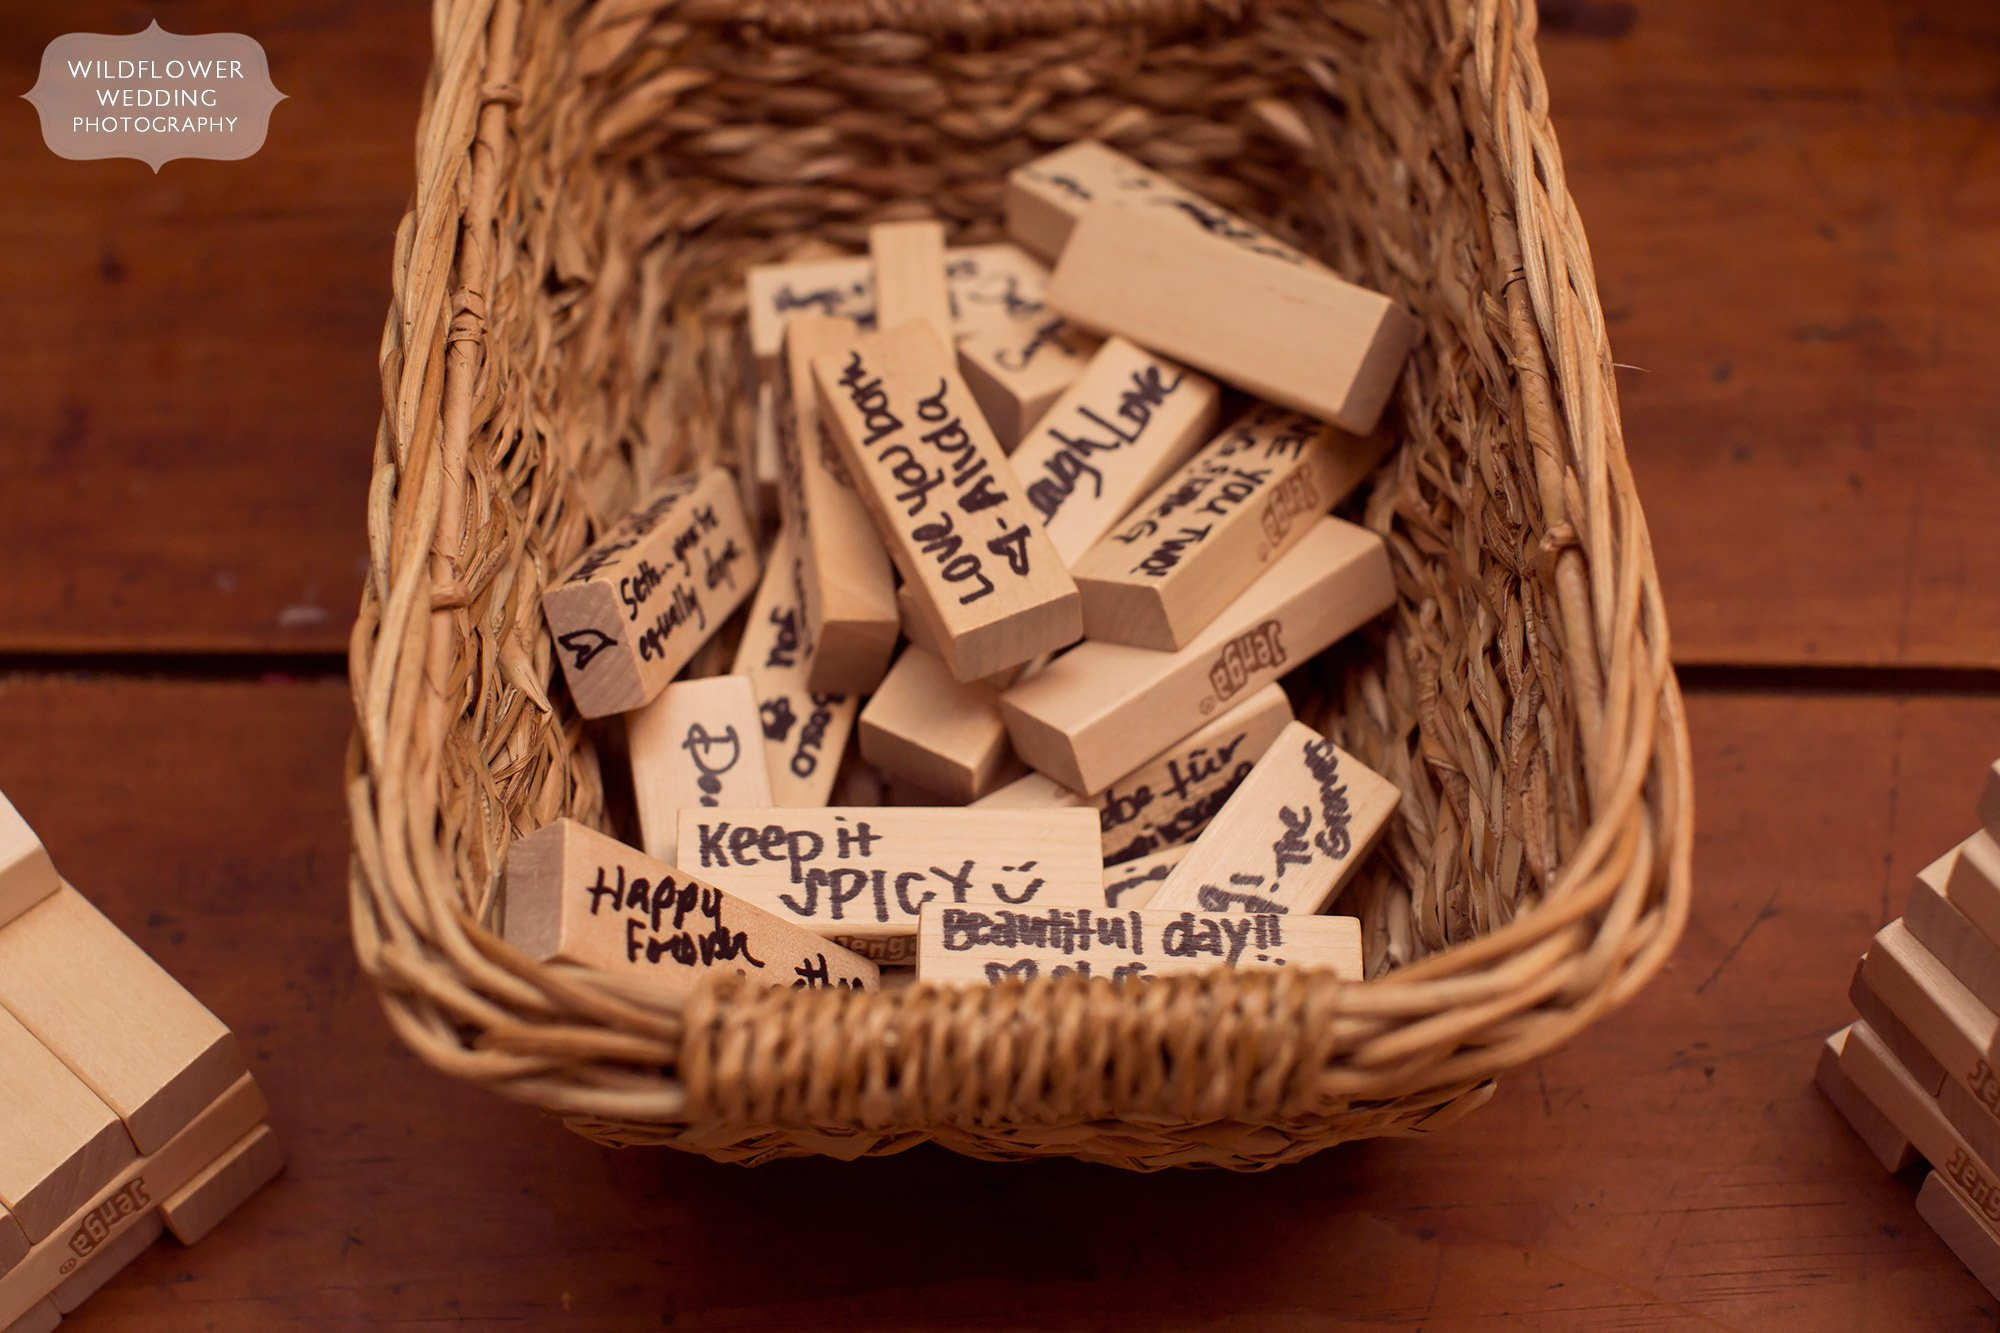 Great unique idea for a guestbook–have people write messages on jenga game pieces!